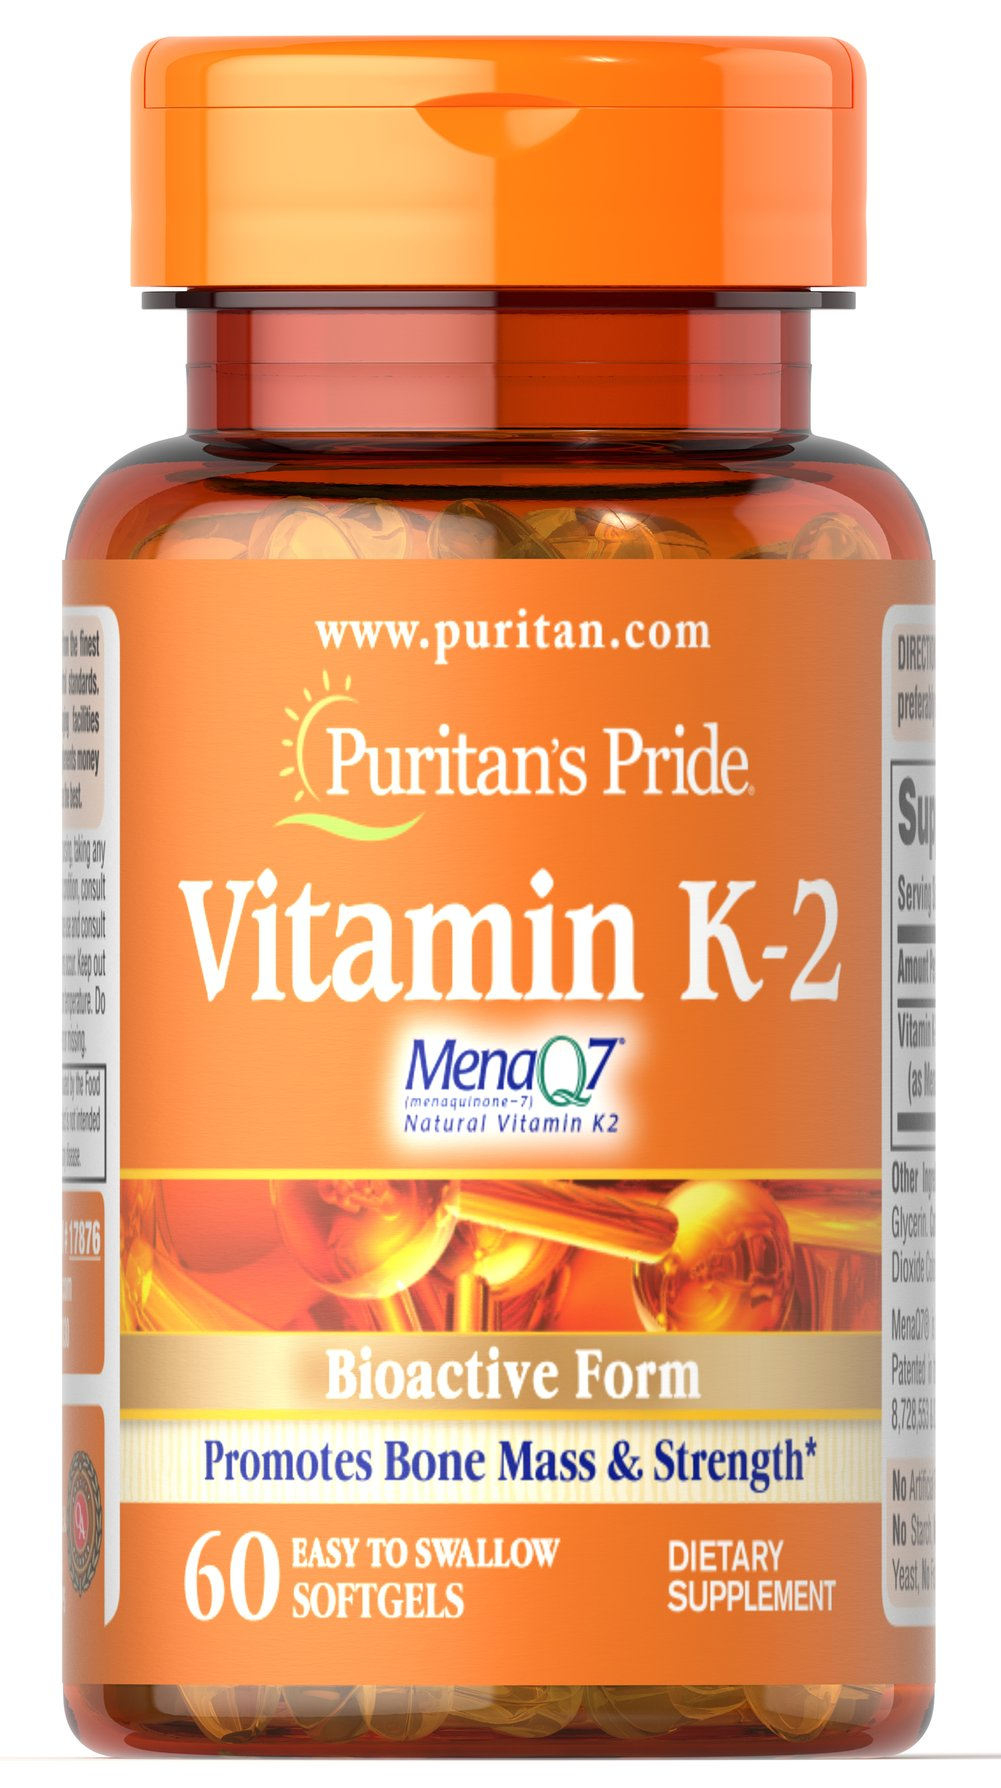 Vitamin K-2 (MenaQ7) 50 mcg  60 Softgels 50 mcg $36.99